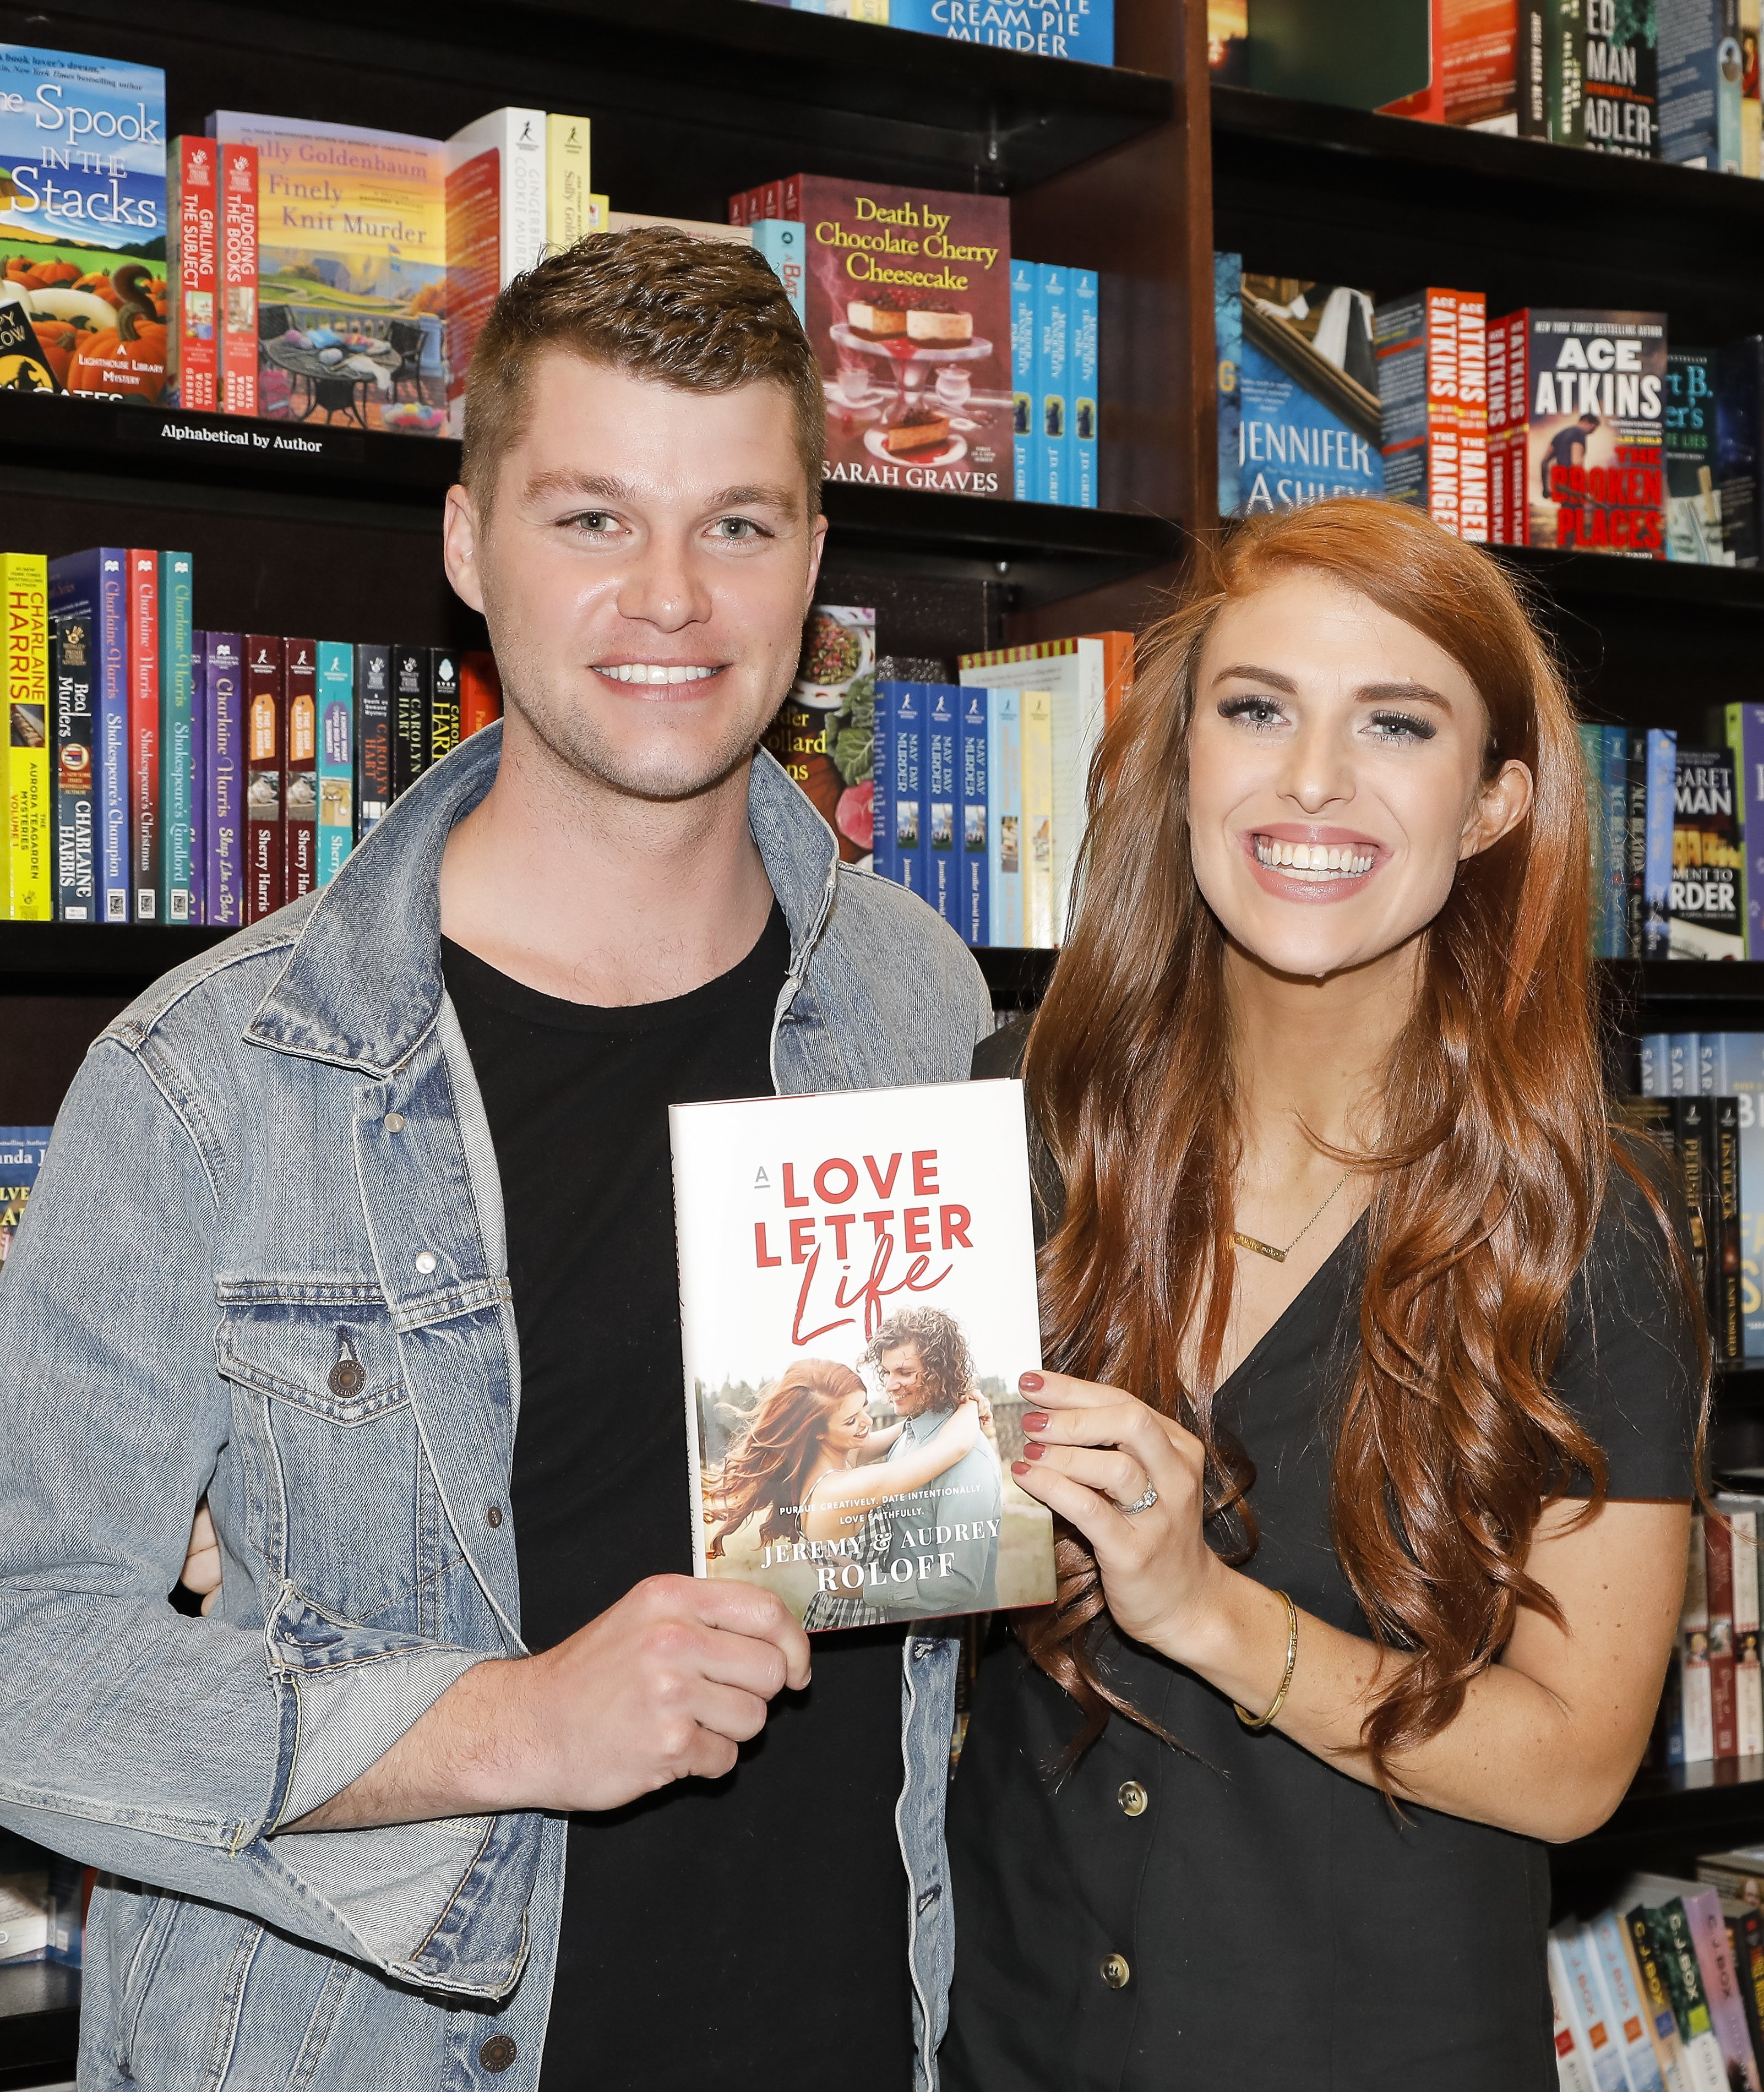 Jeremy Roloff and Audrey Roloff celebrate their new book 'A Love Letter Life' at Barnes & Noble at The Grove on April 10, 2019 | Photo: Getty Images